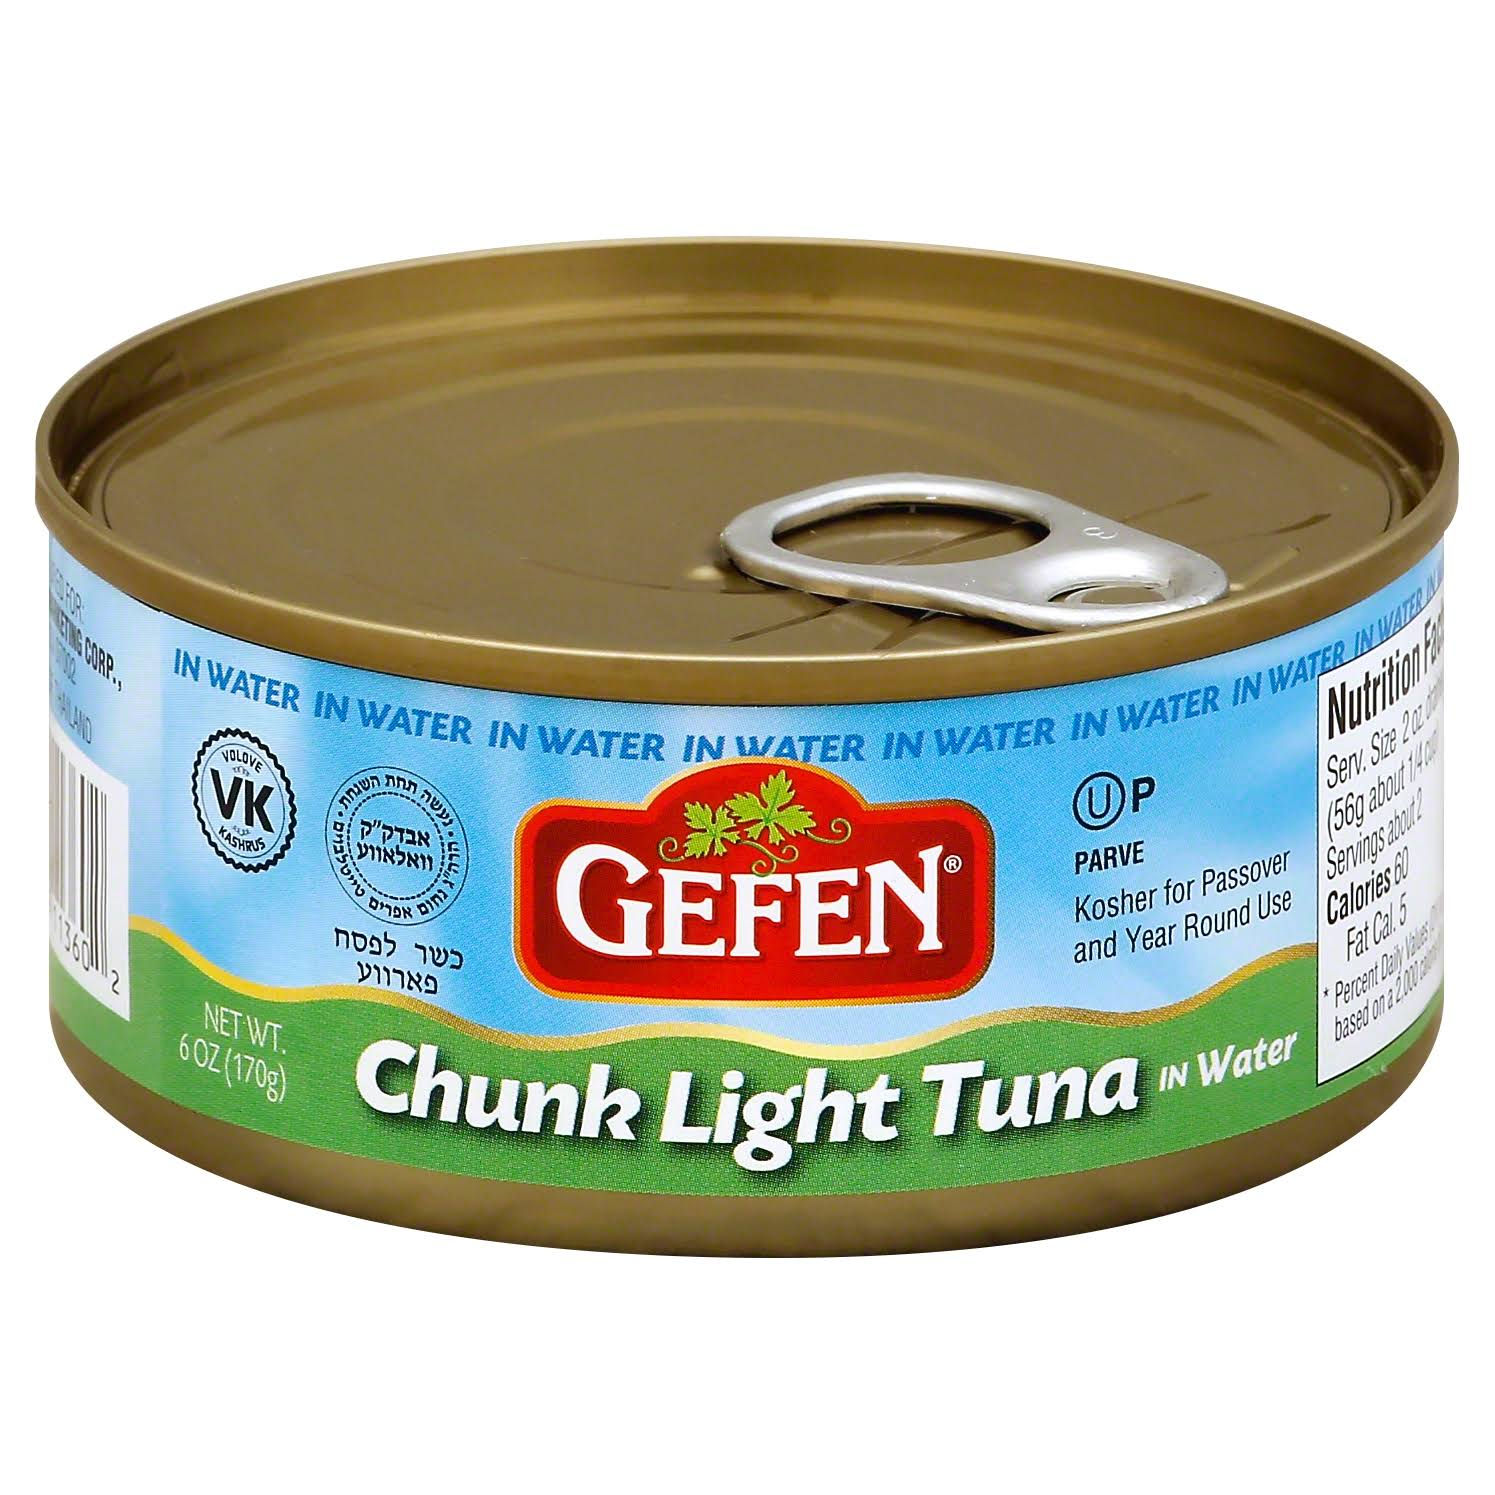 Gefen Chunk Light Tuna in Water 170g